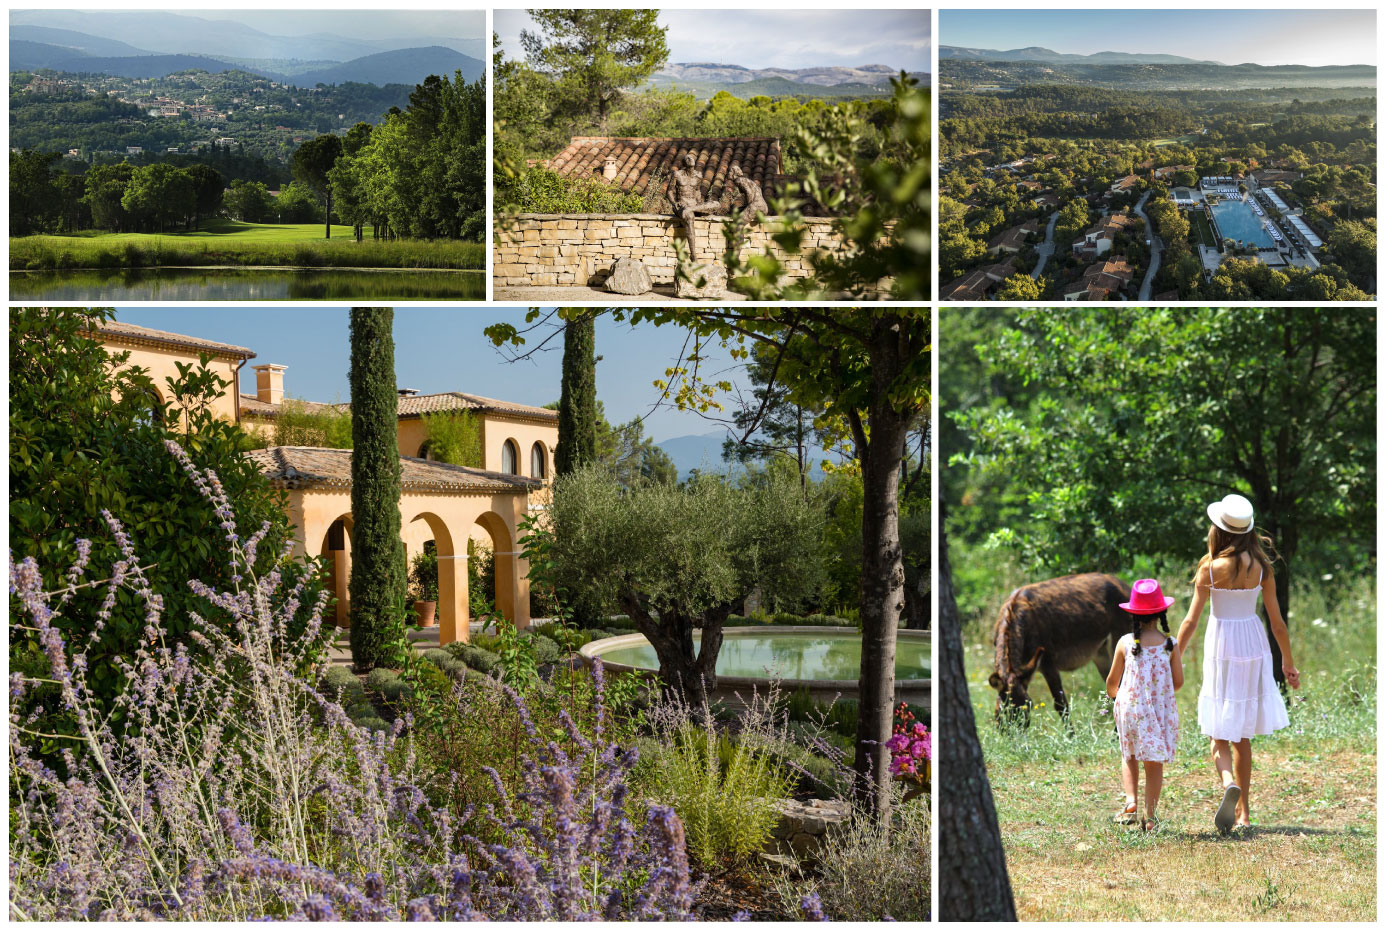 Terre Blanche Hotel Resort, pays Varois. Plume Voyage Magazine #plumevoyage @plumevoyagemagazine @plumevoyage © DR